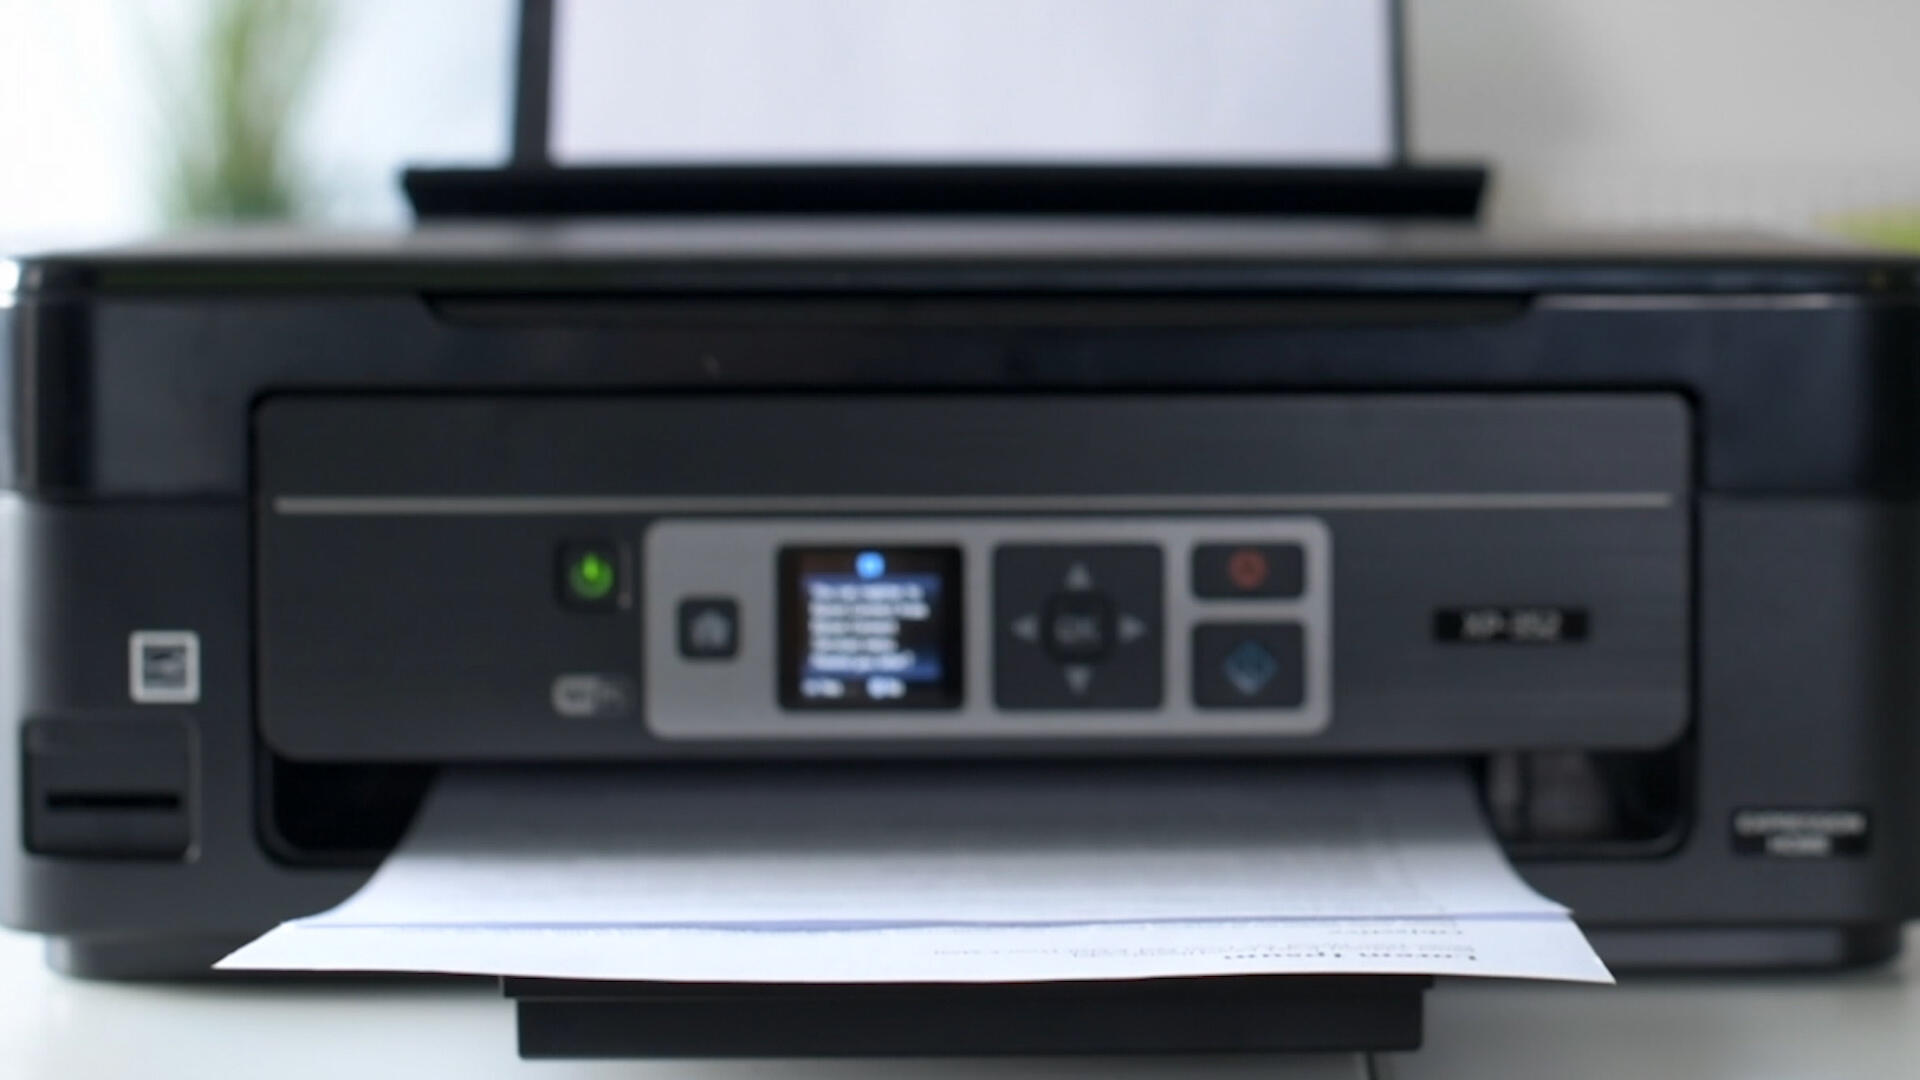 Video: Best tips for buying a new printer